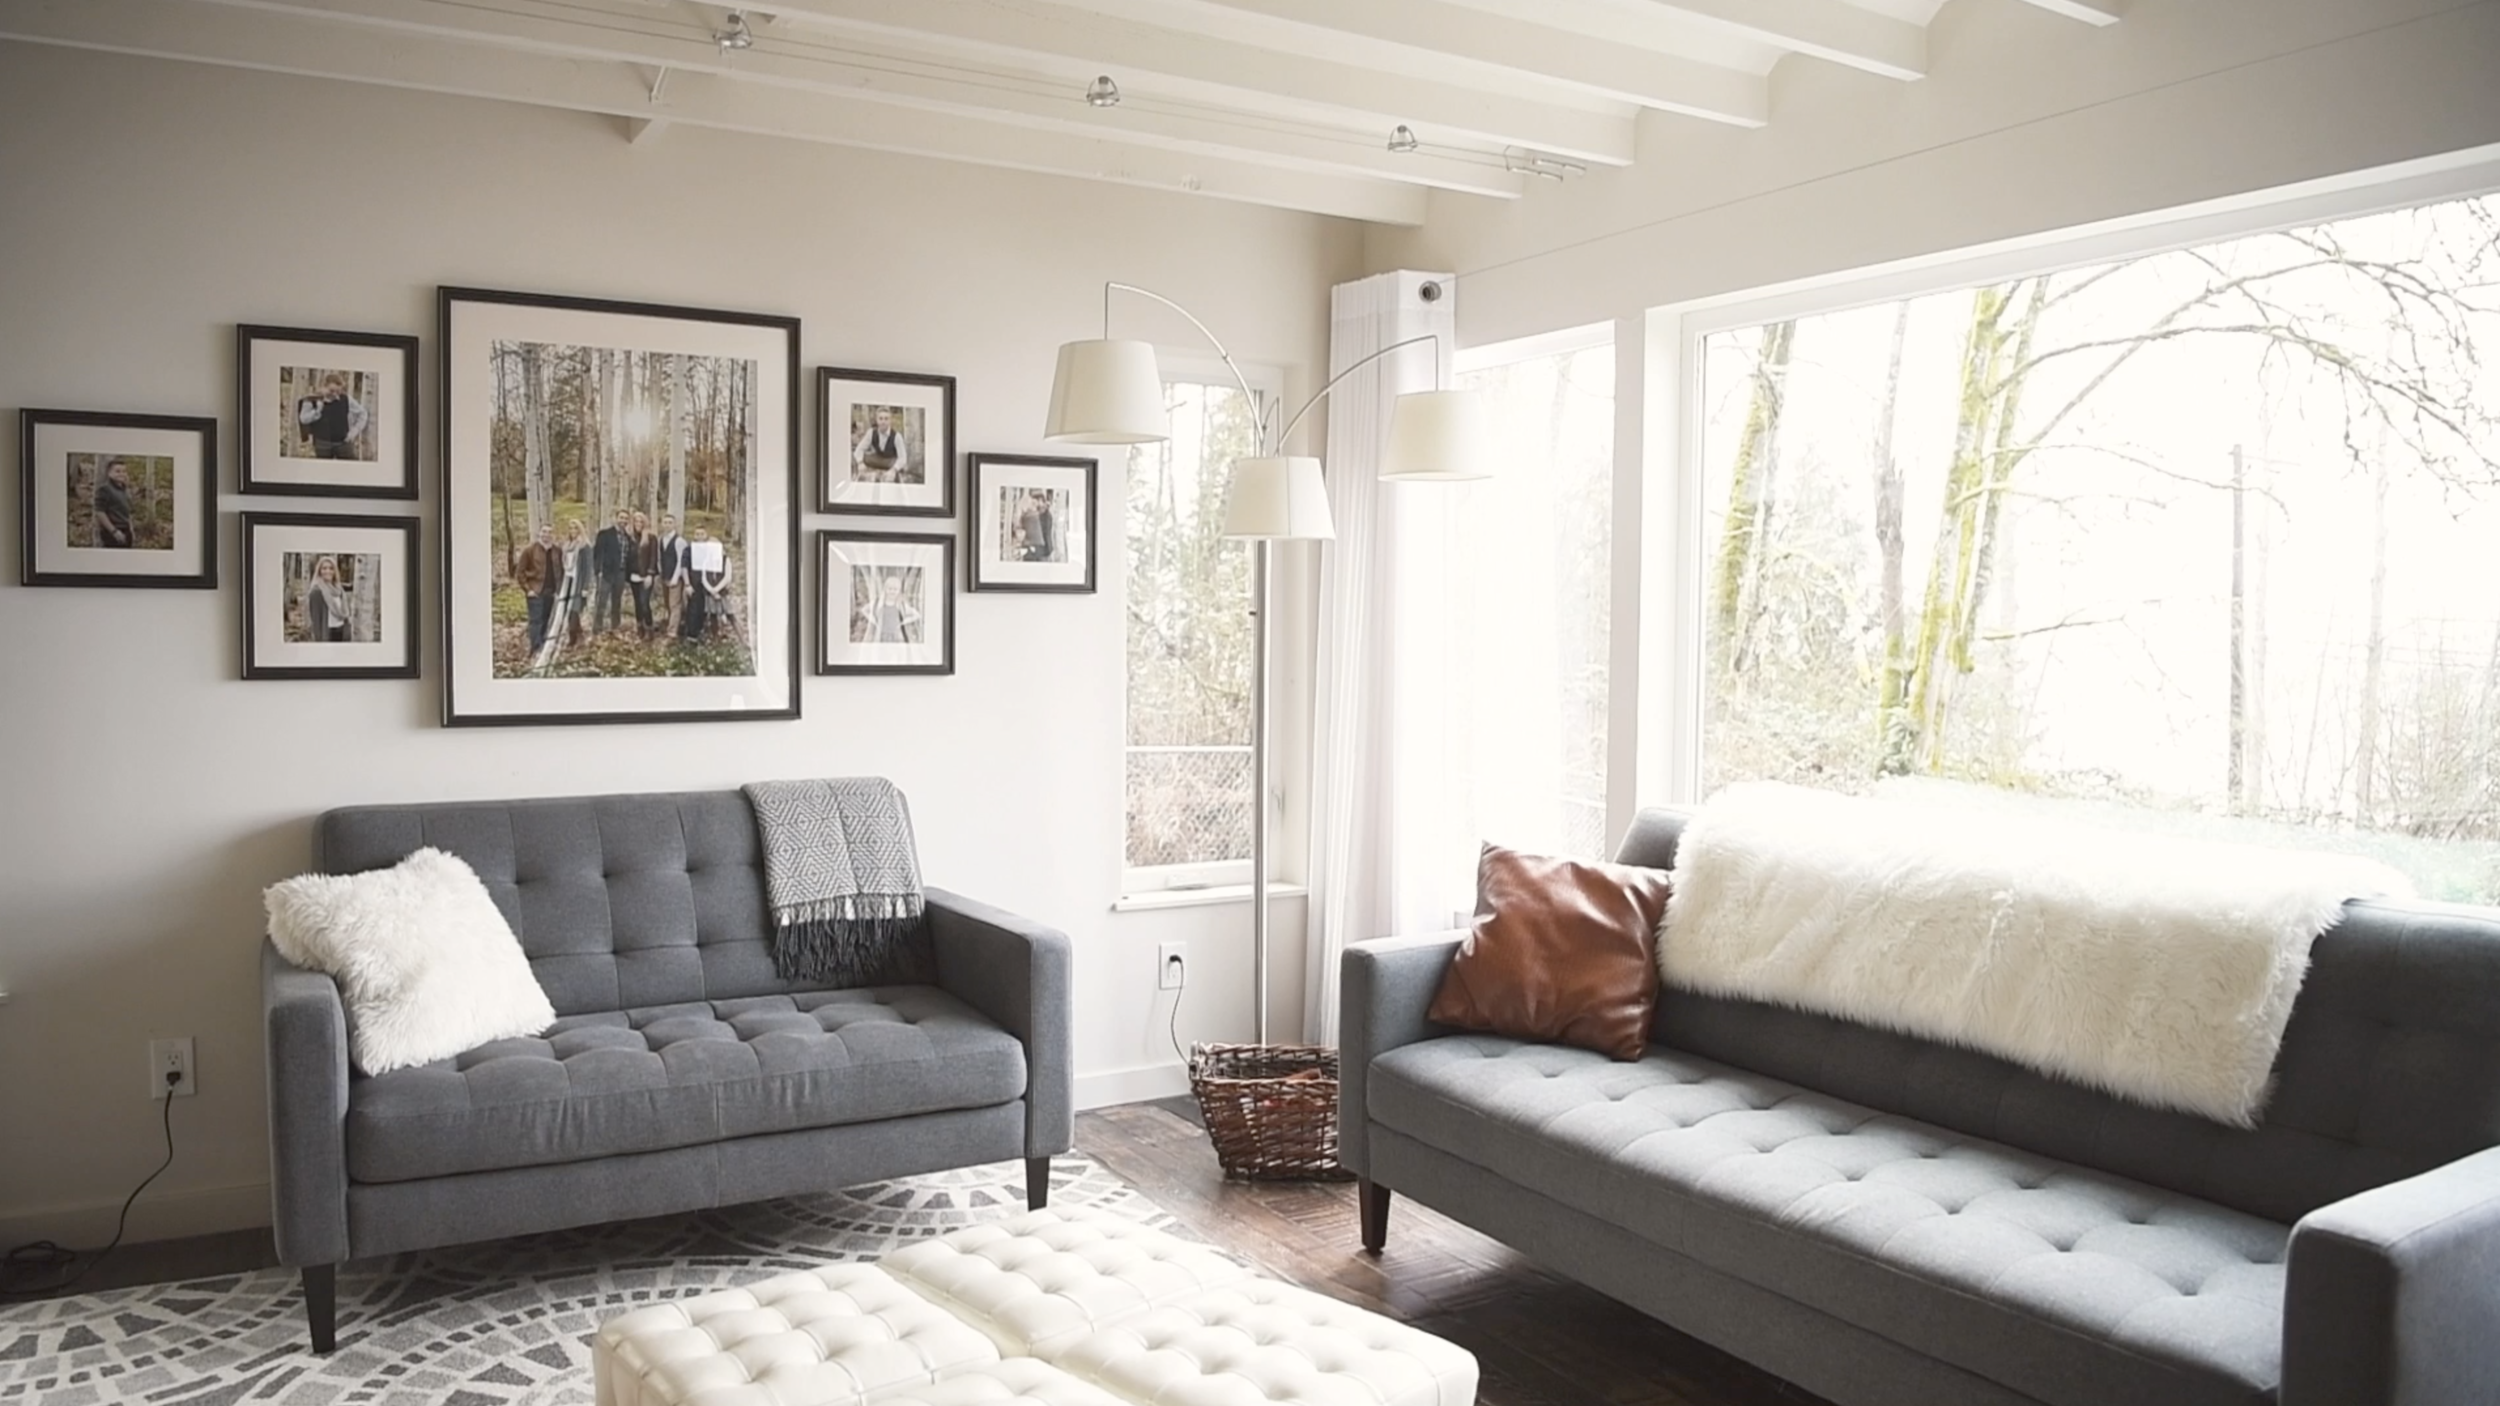 Decorating your home with family photography | PC:  StudioBportraits.com